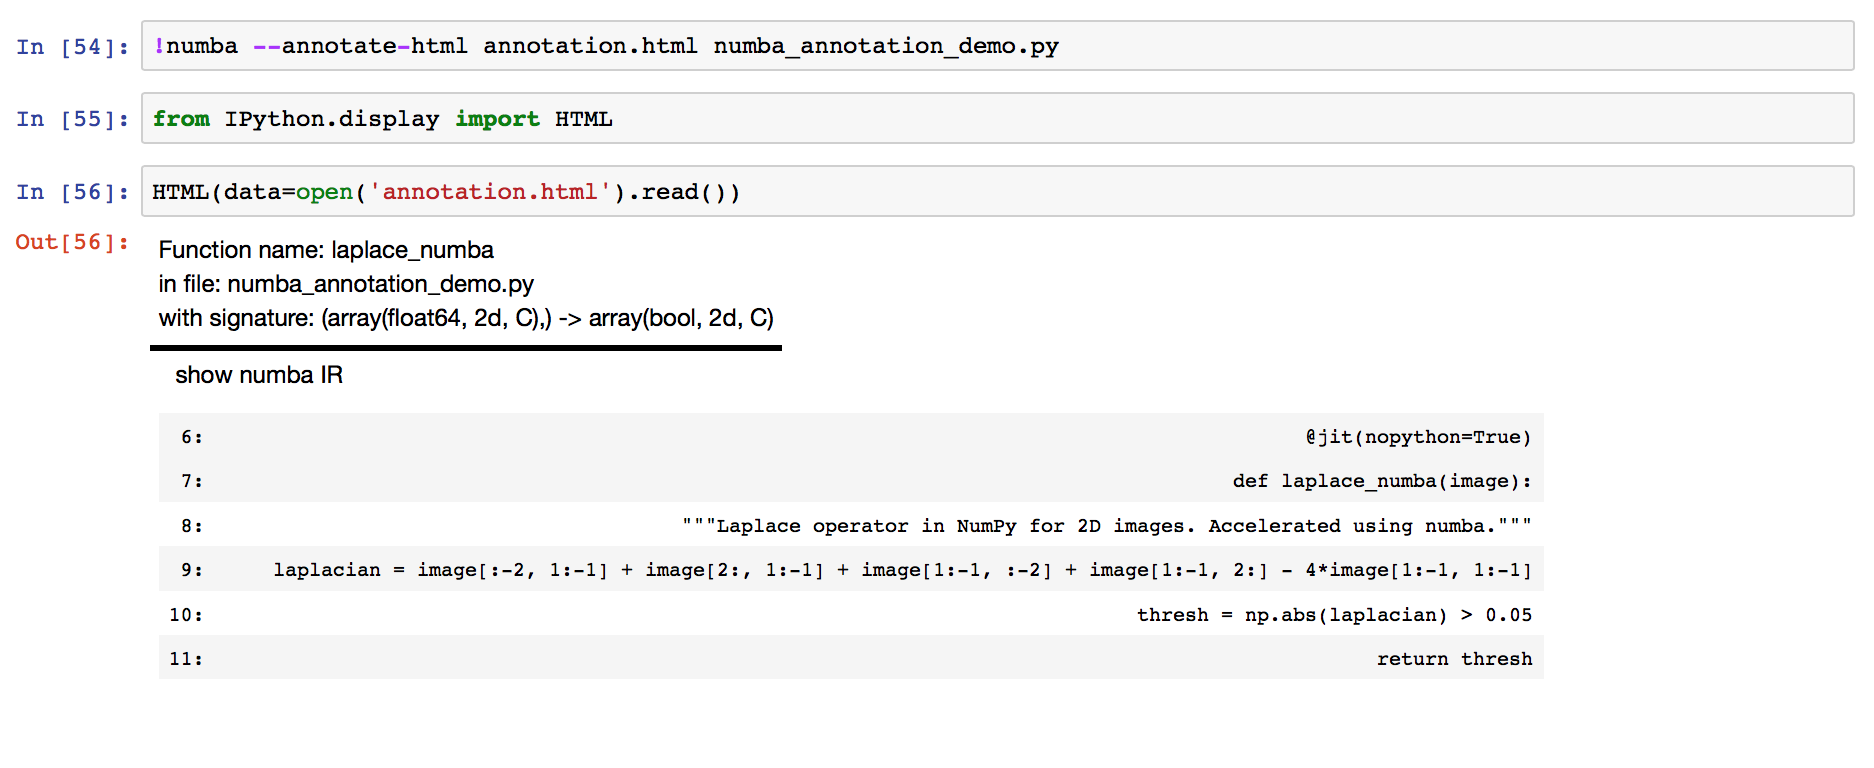 Numba HTML annotations